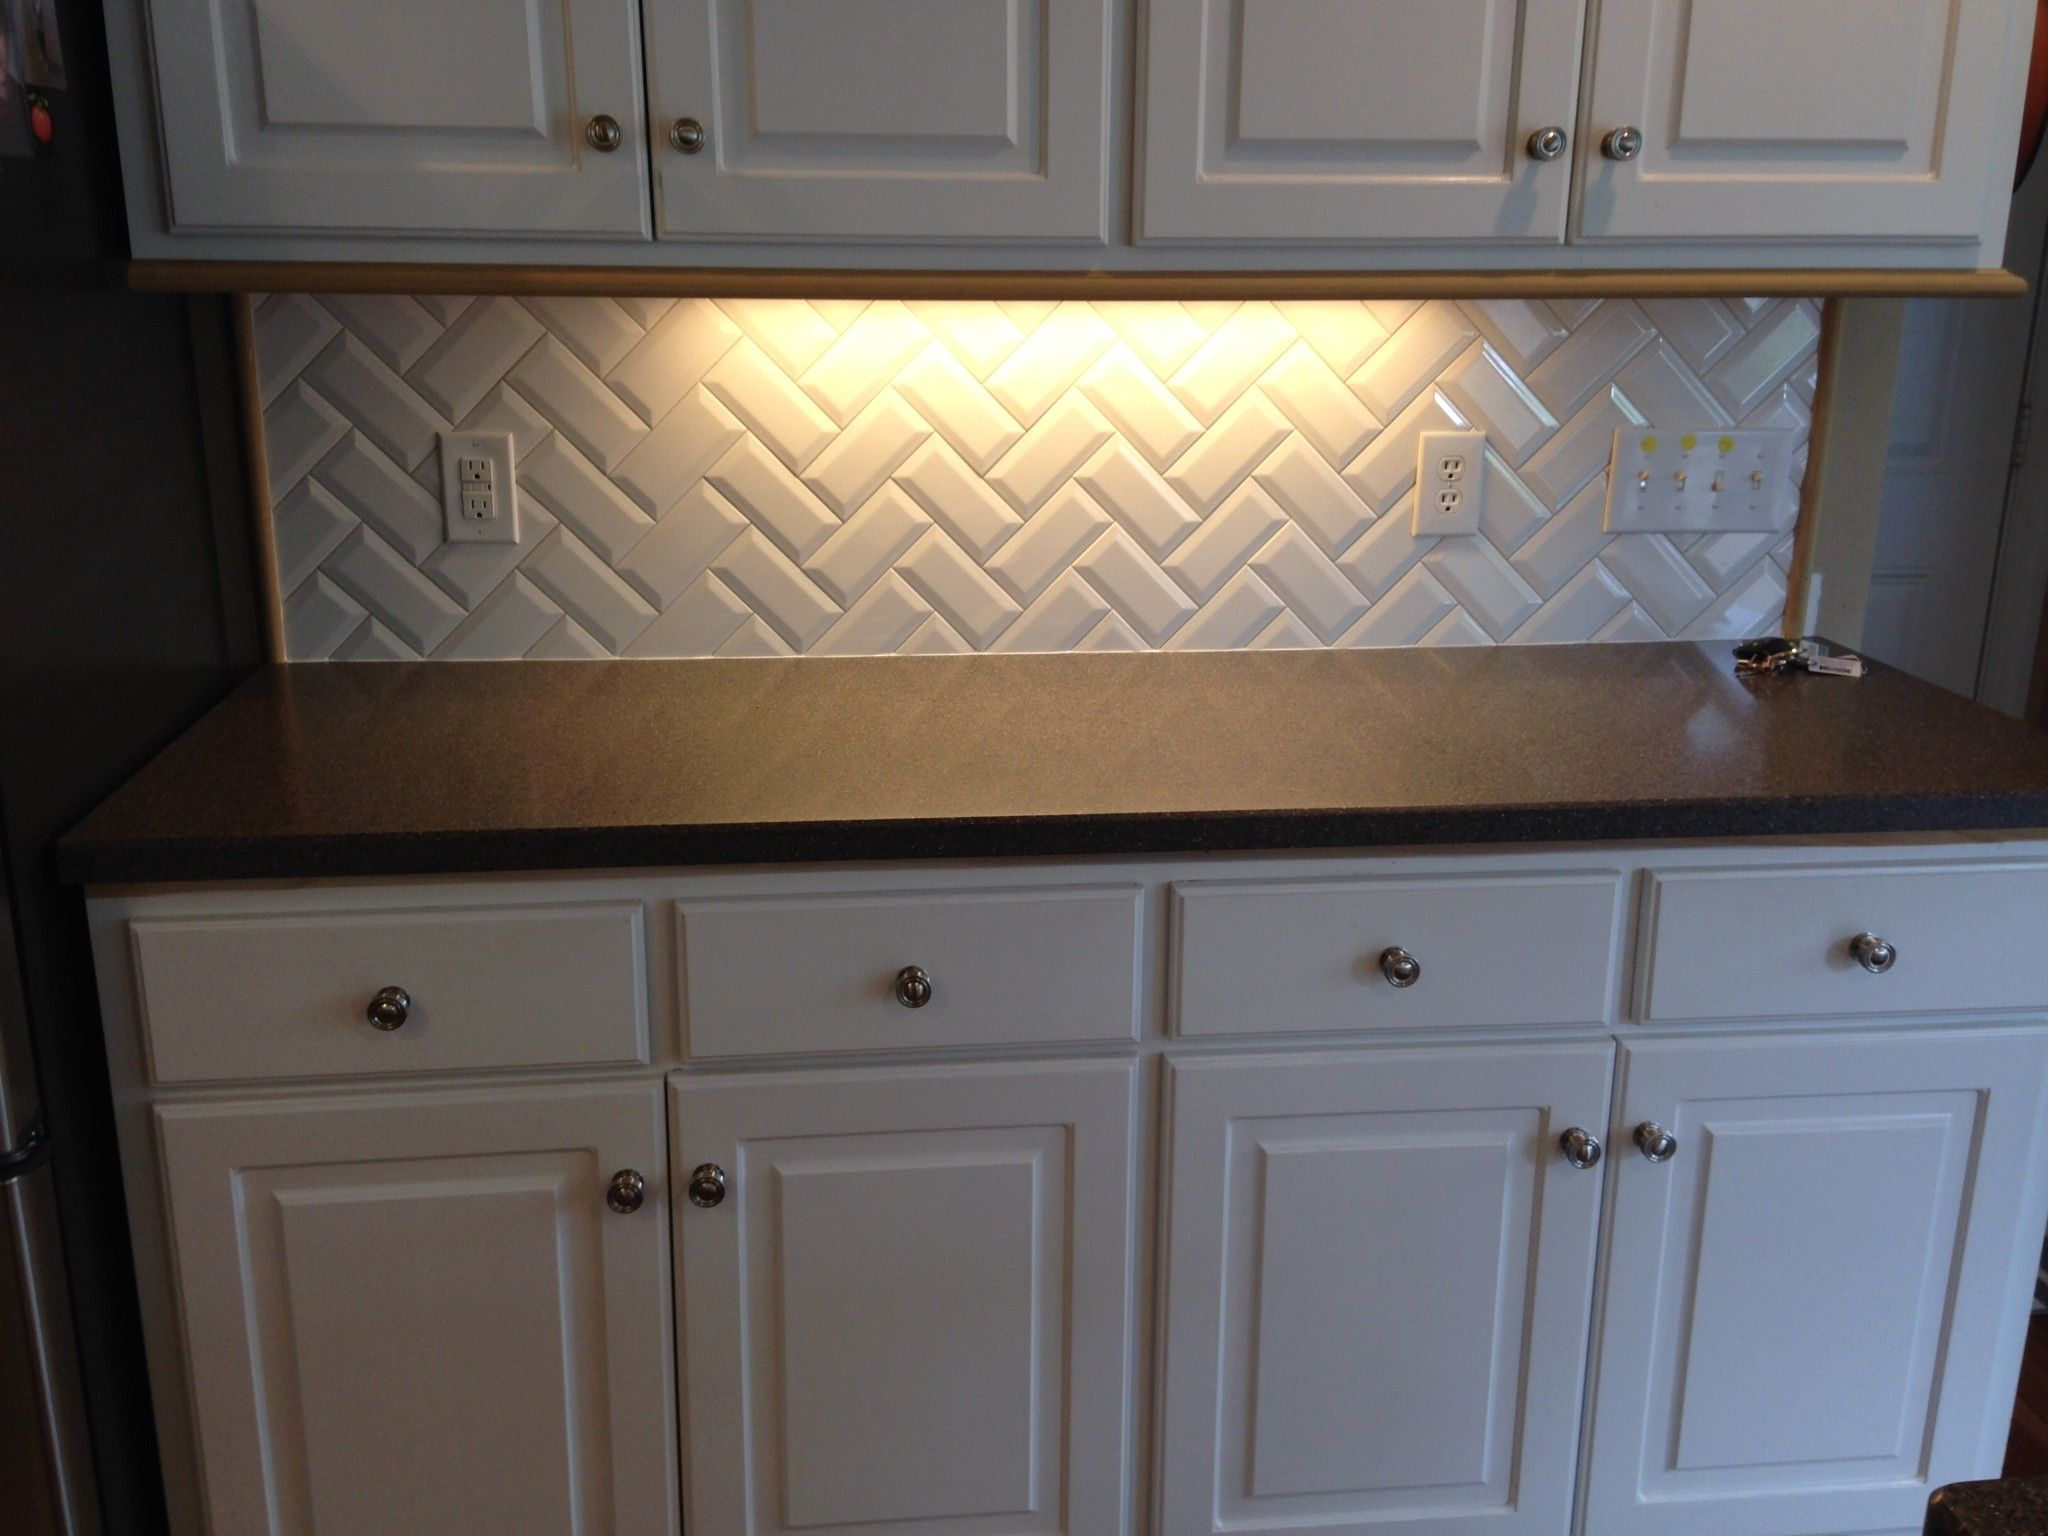 primus white 3x6 beveled subway tile in herringbone